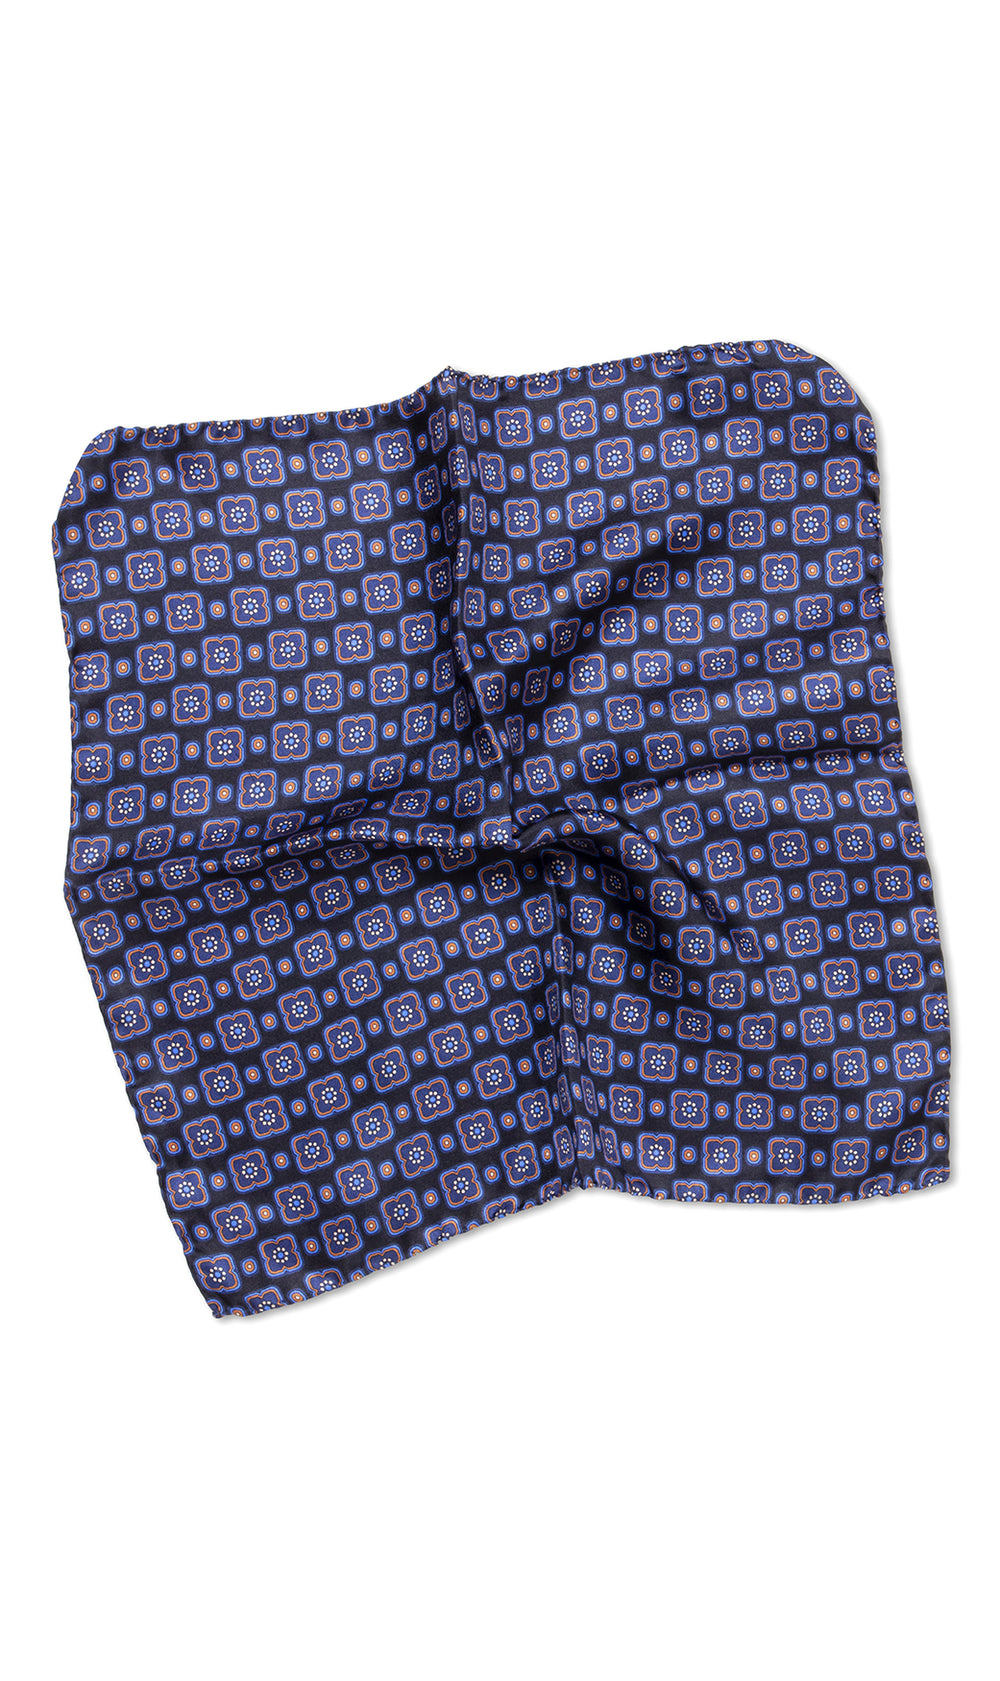 Duccio Blue Pocket Square - MCM Studio